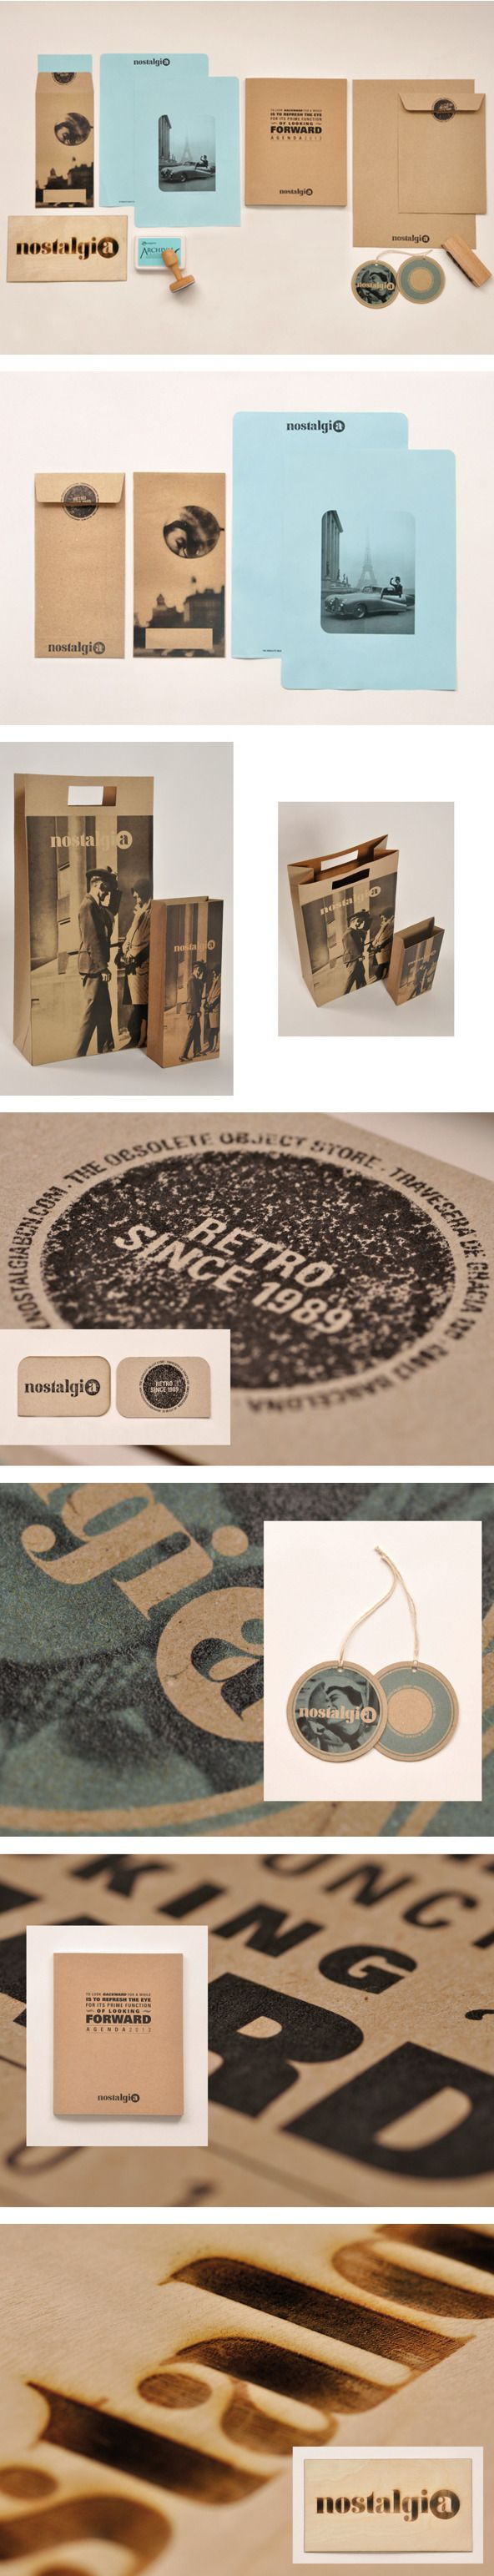 Nostalgia by Dharani Bassols #identity #packaging #branding PD